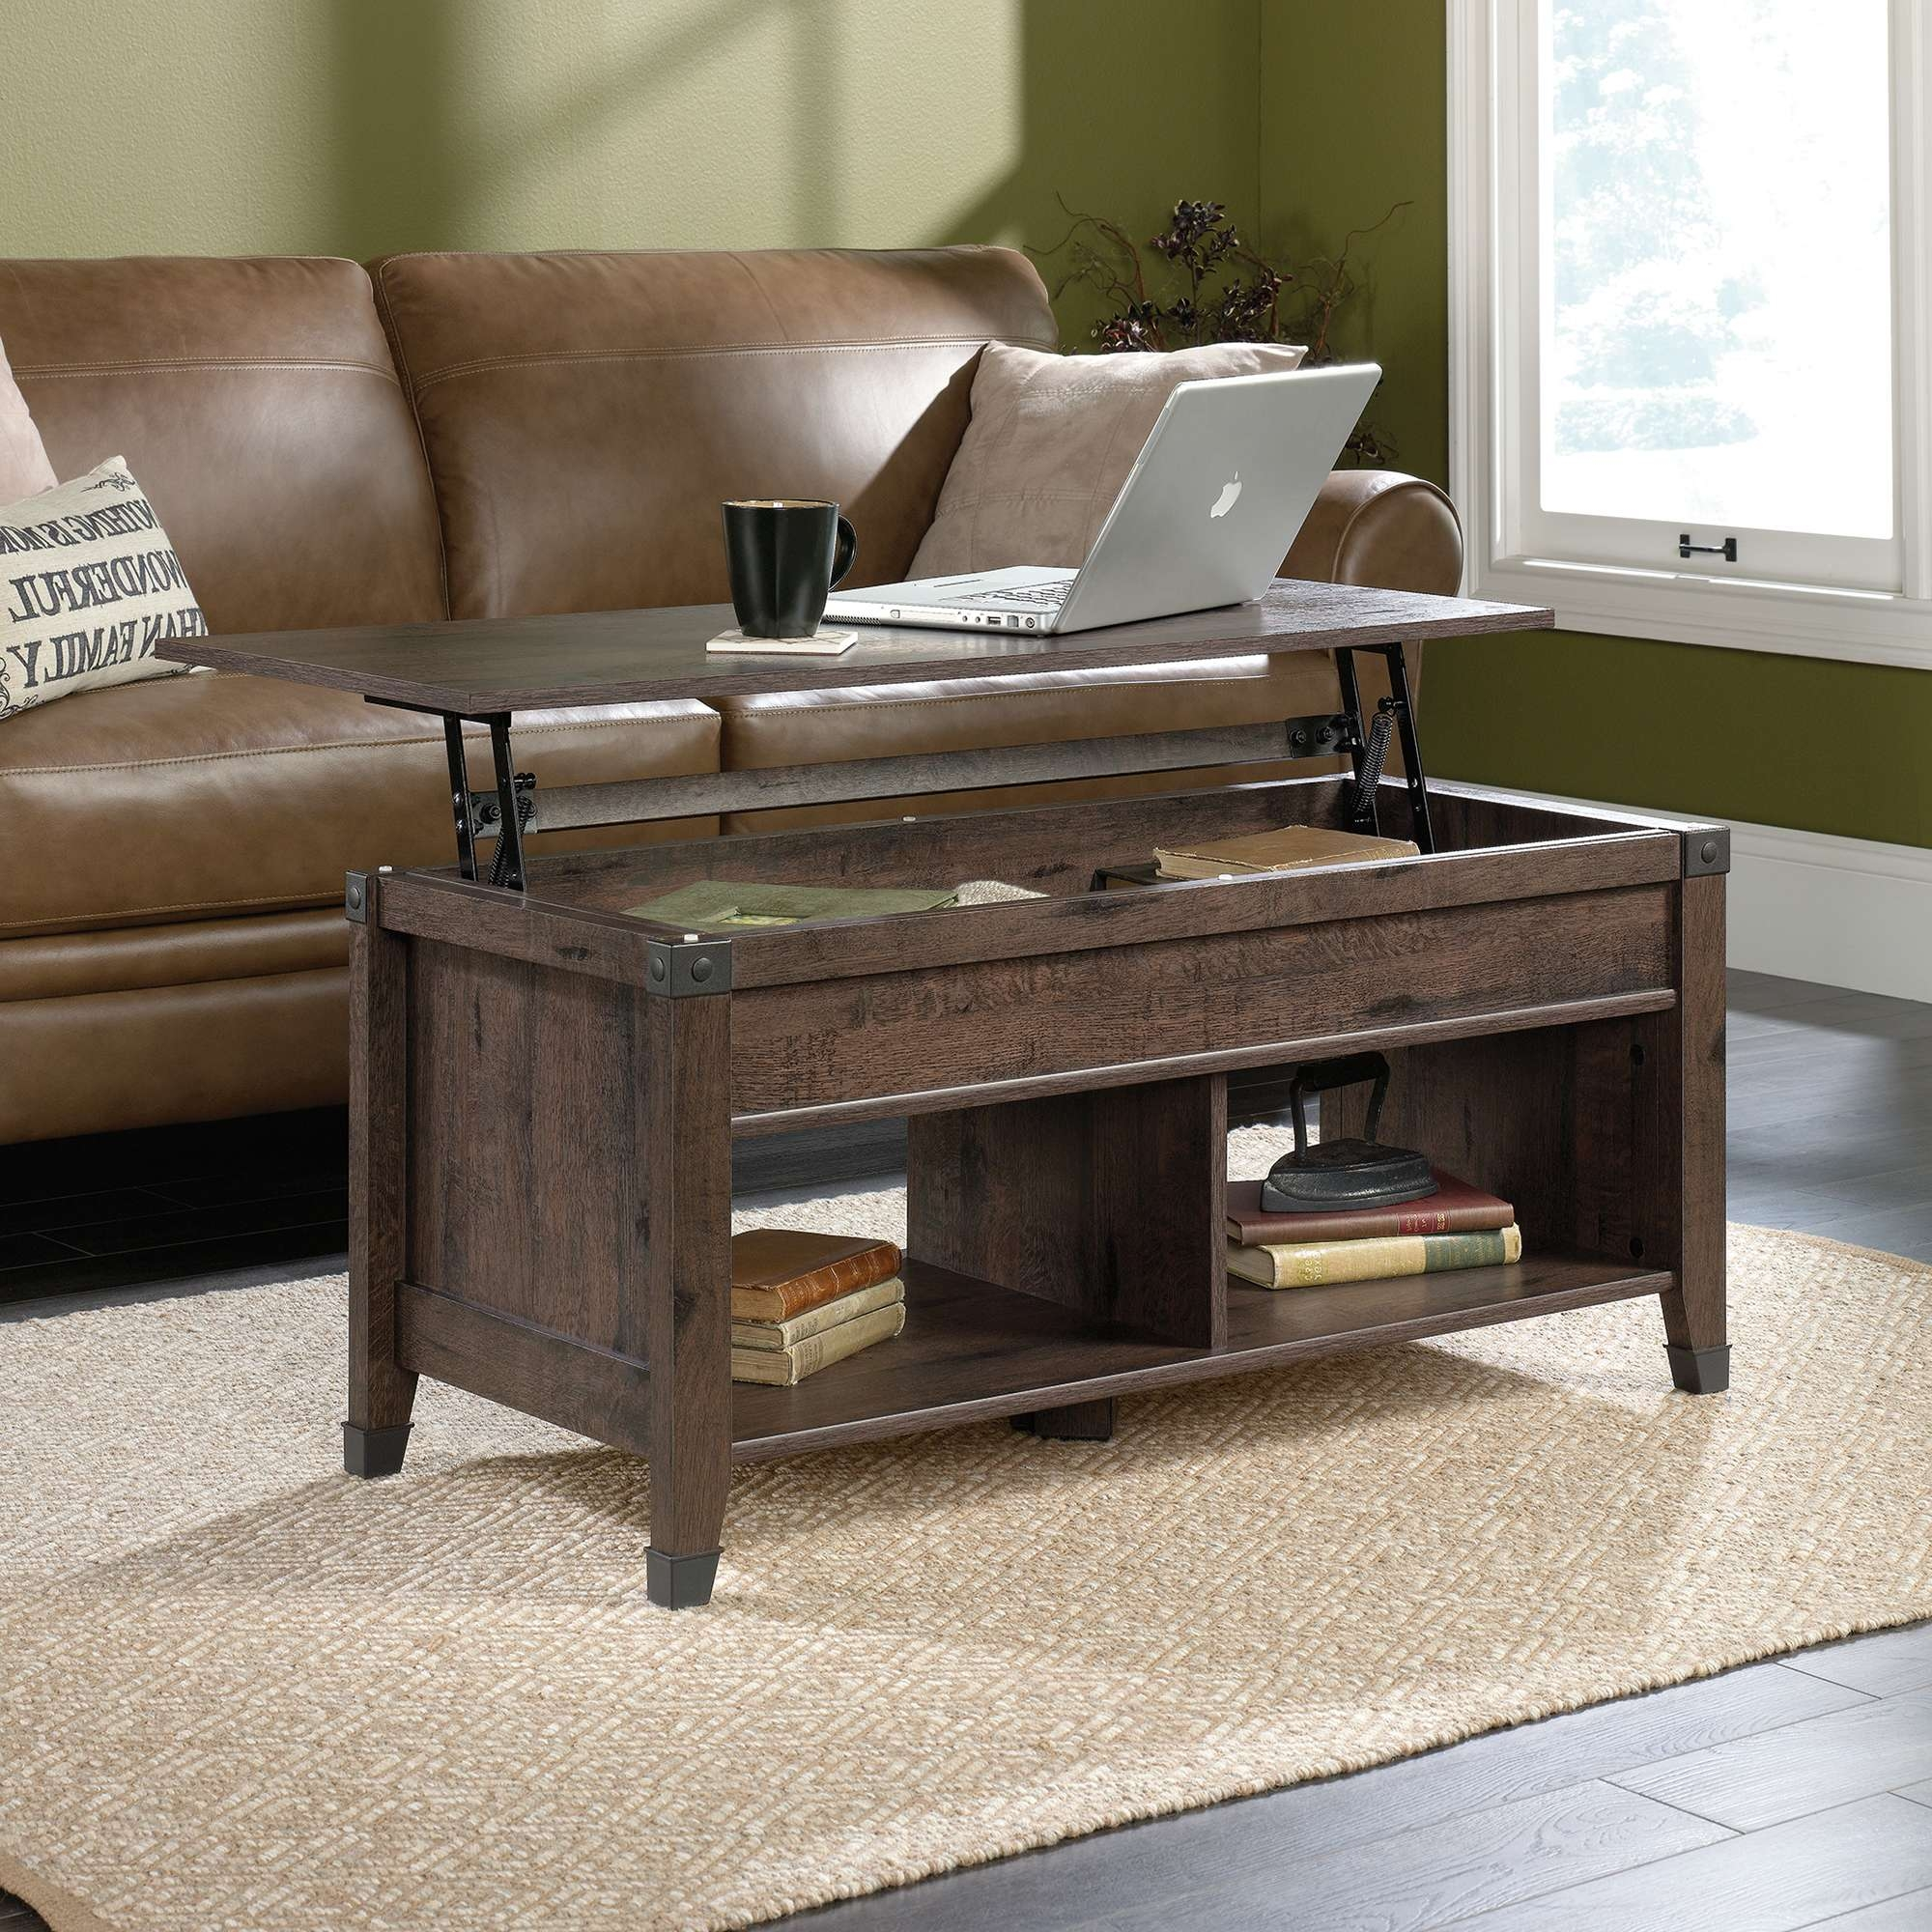 Sauder With Regard To Fashionable Coffee Table With Raised Top (View 9 of 20)